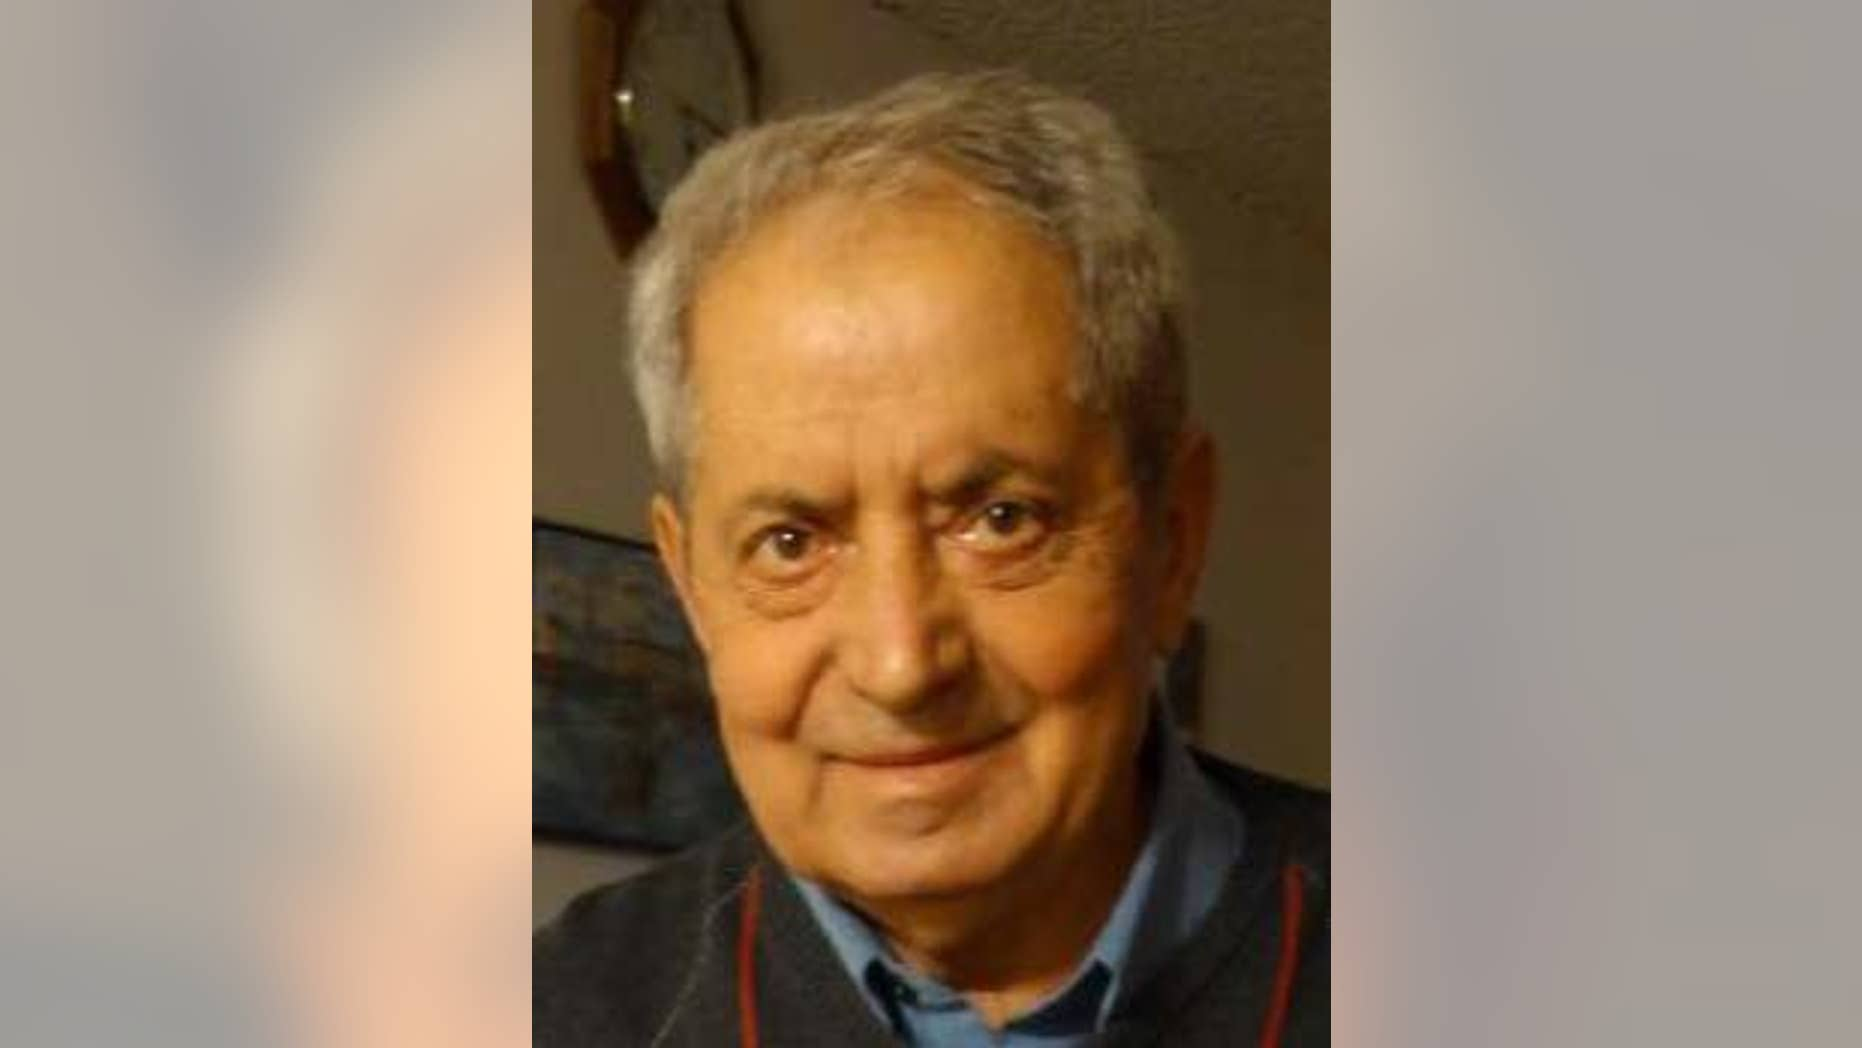 Isaak Komisarchik, 82, died in an elevator after he pushed the emergency button twice but received no response.